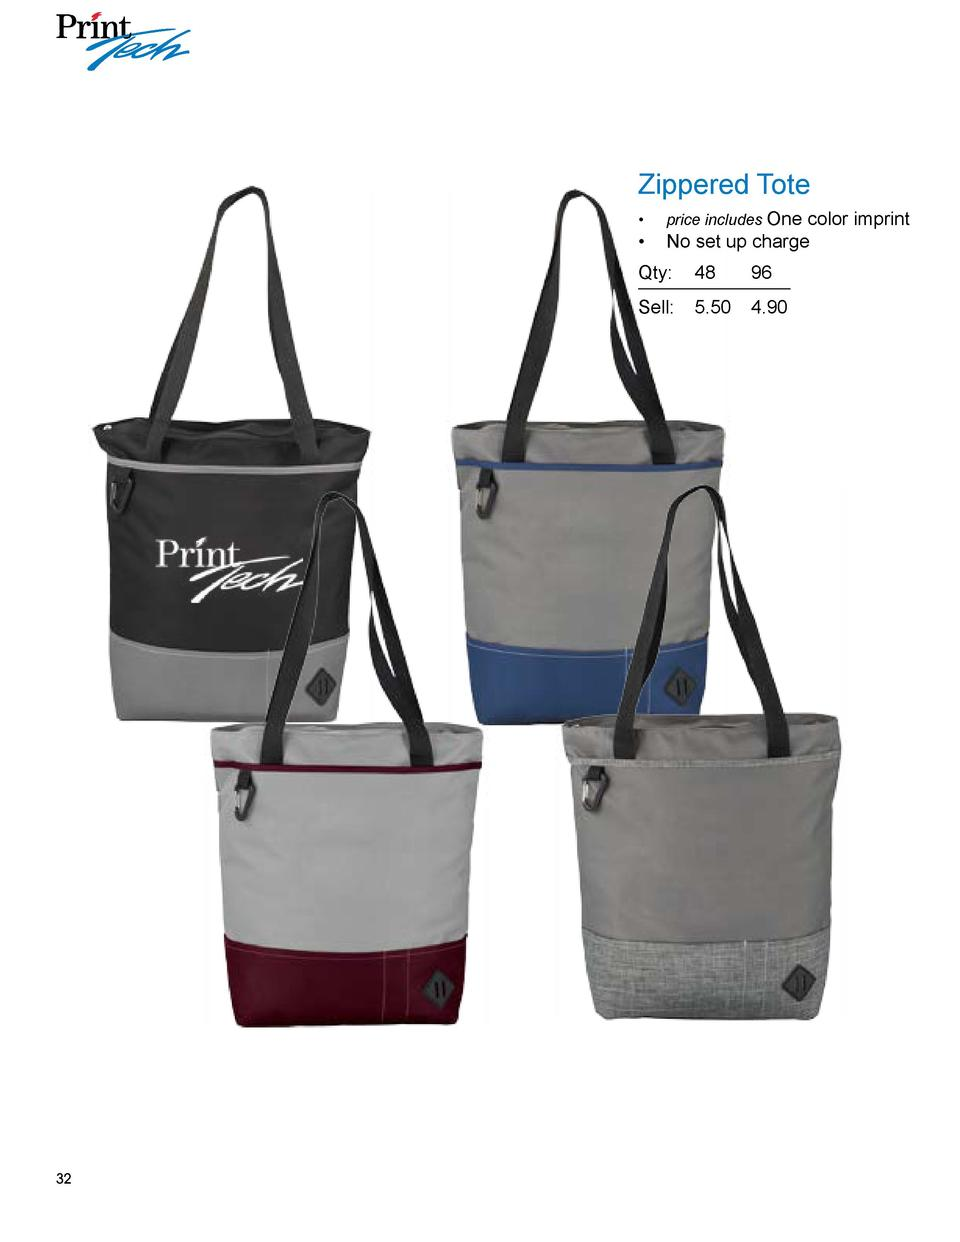 Zippered Tote color imprint      No set up charge       price includes One  Qty  48  96 Sell    5.50  4.90  32